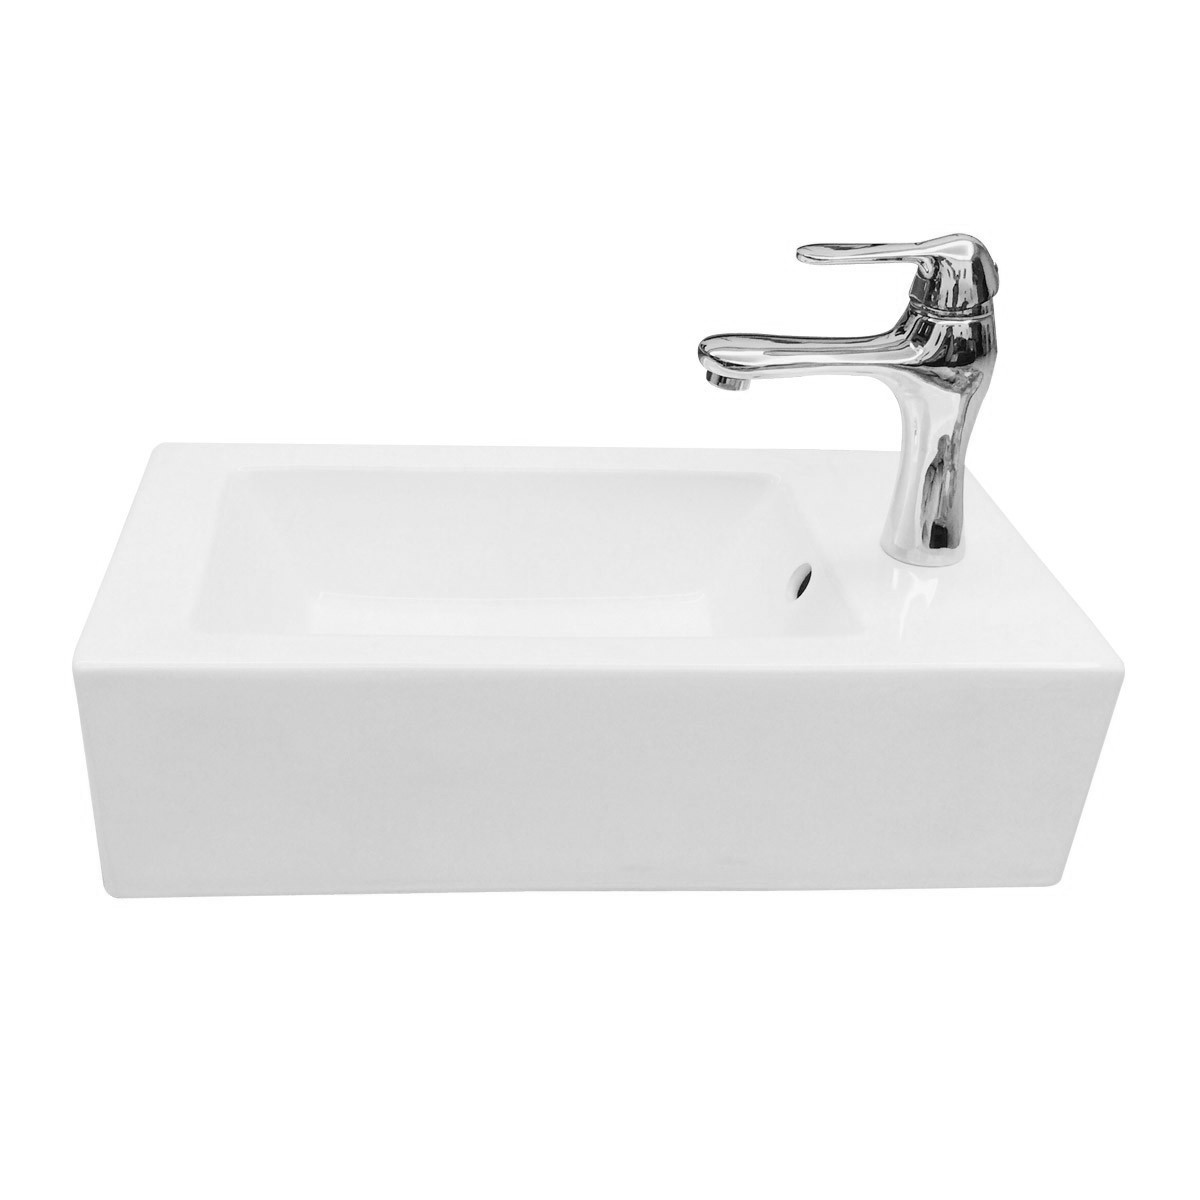 Small Wall Mount Bathroom Sink Rectangle With Overflow